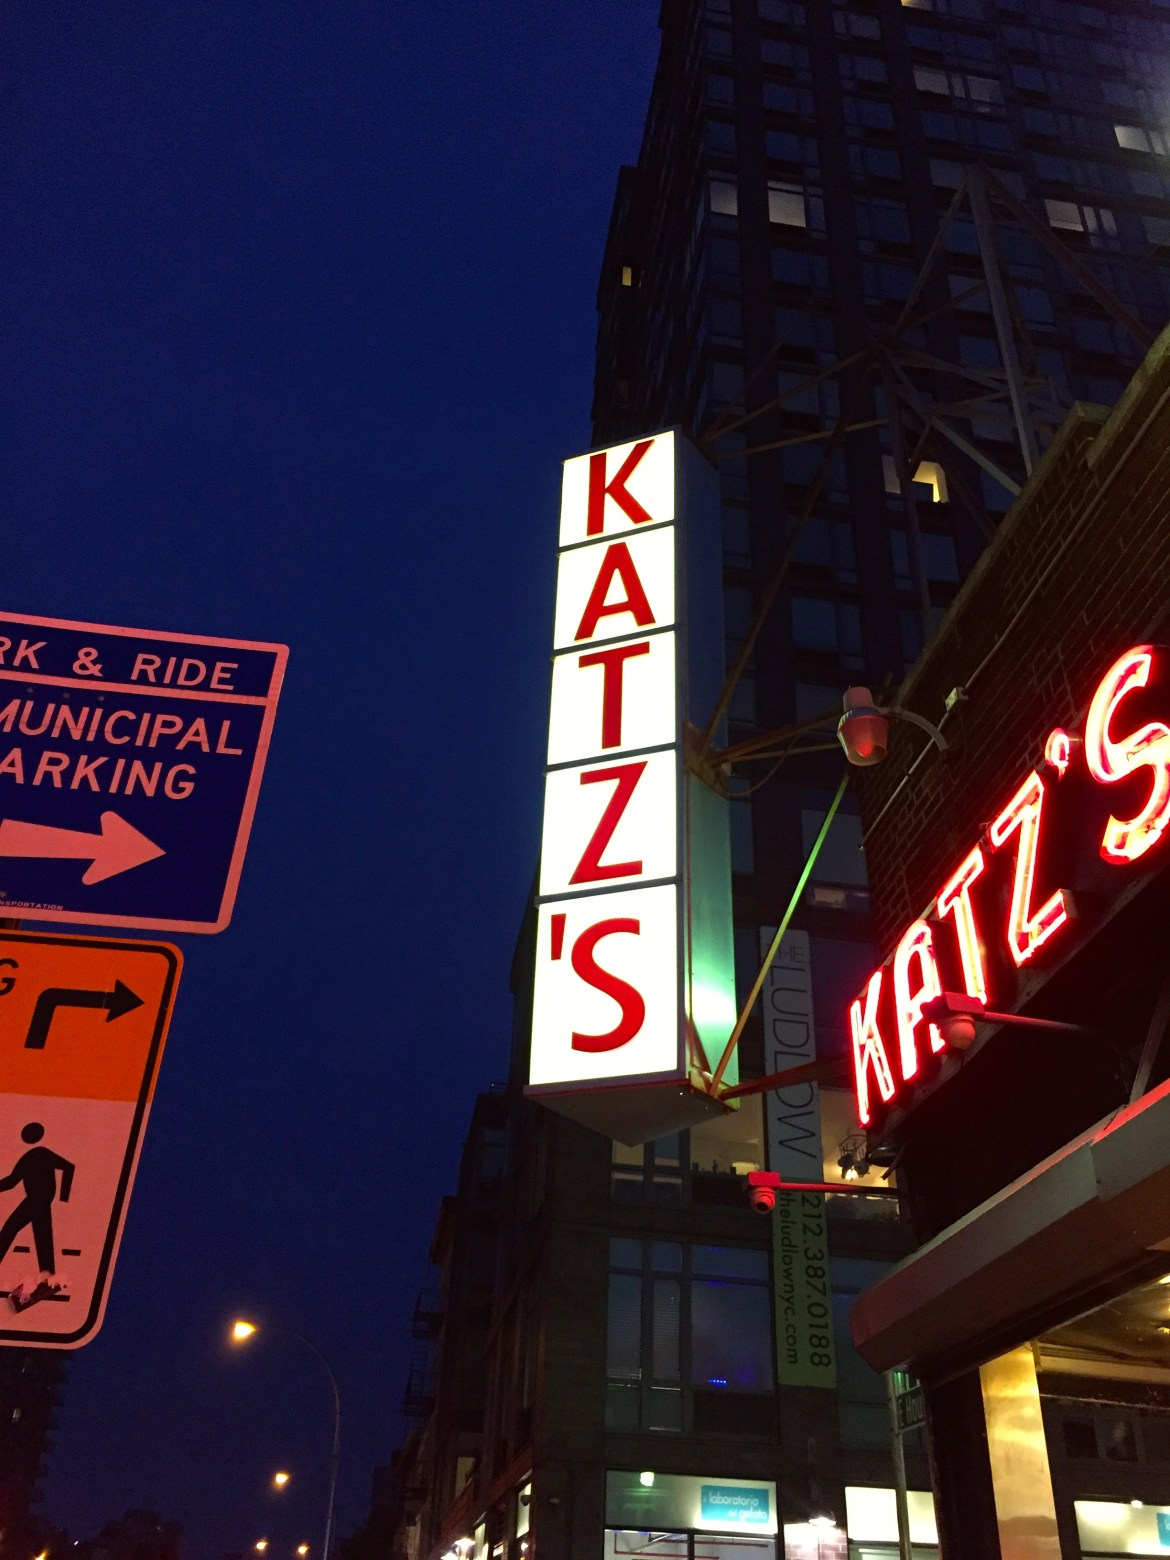 Katz's Deli New York